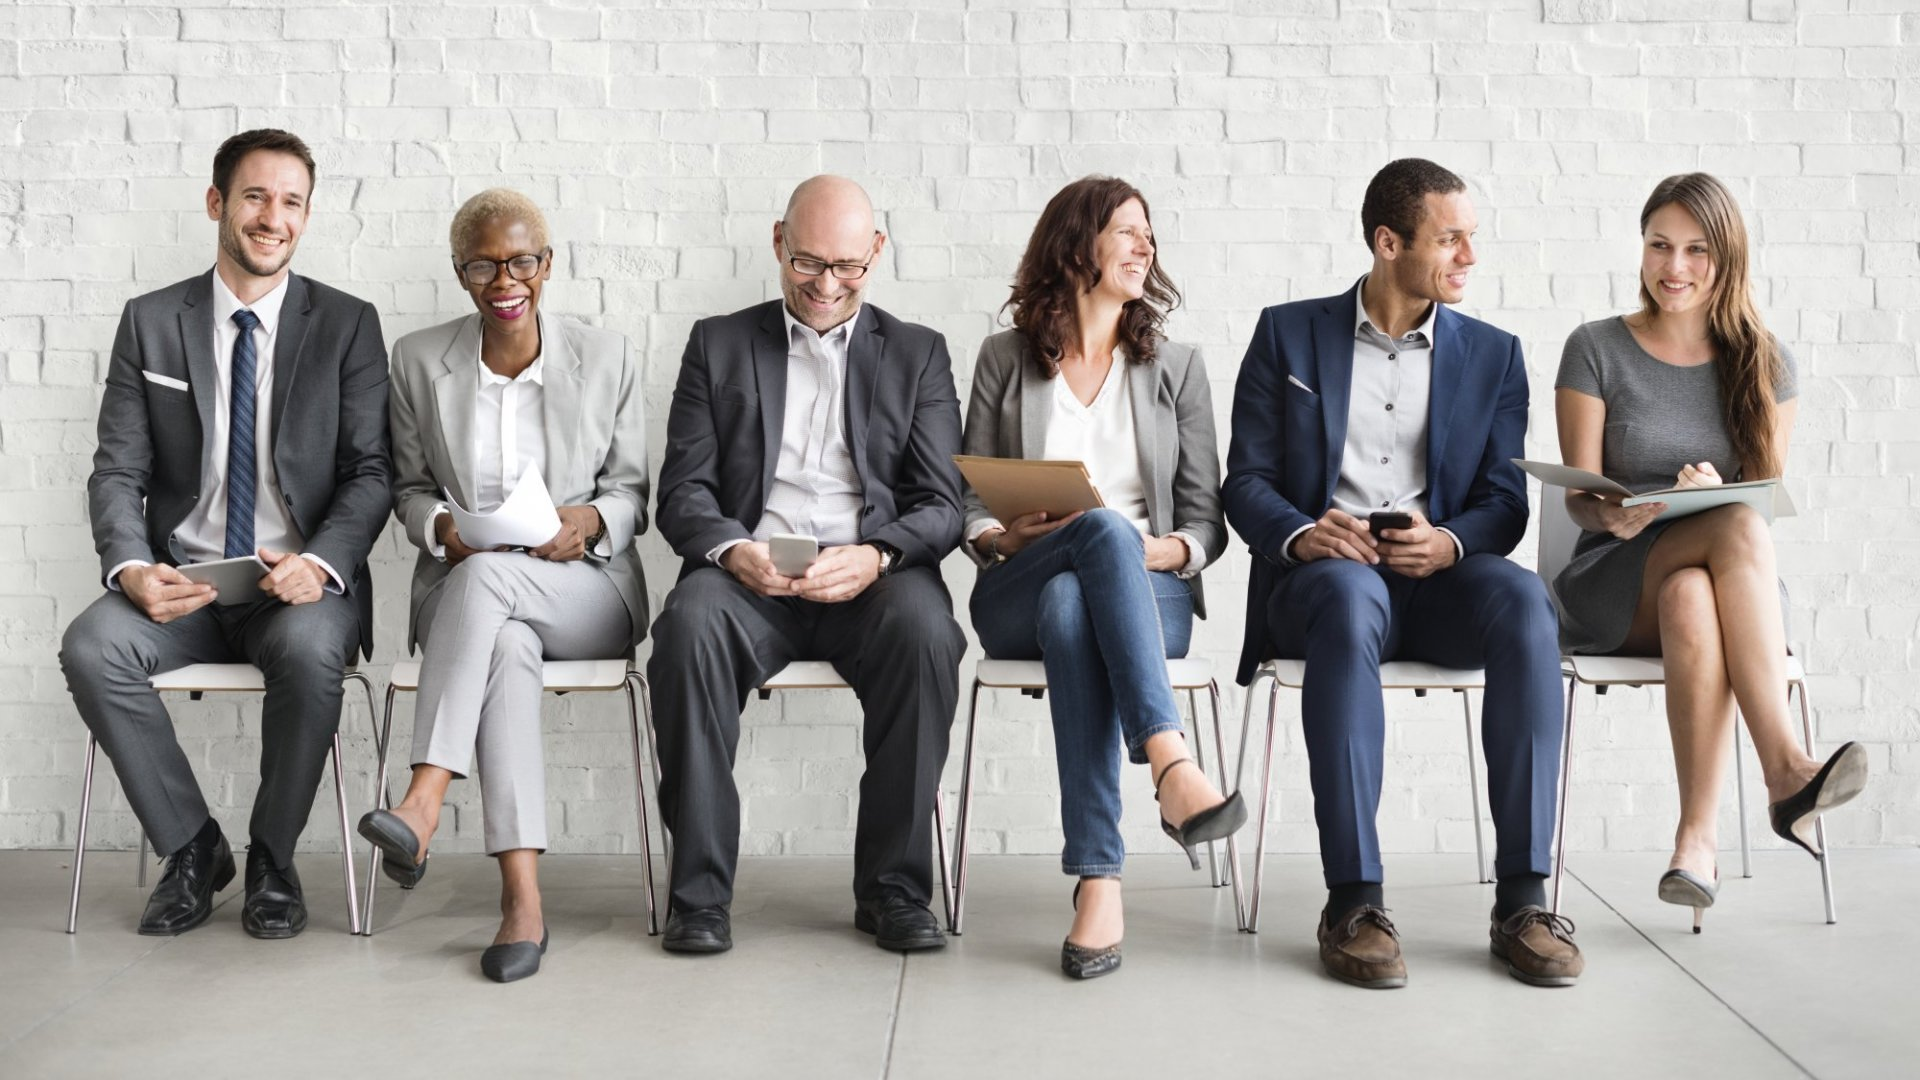 10 Things You Need to Prepare Before Hiring Employees for the First Time